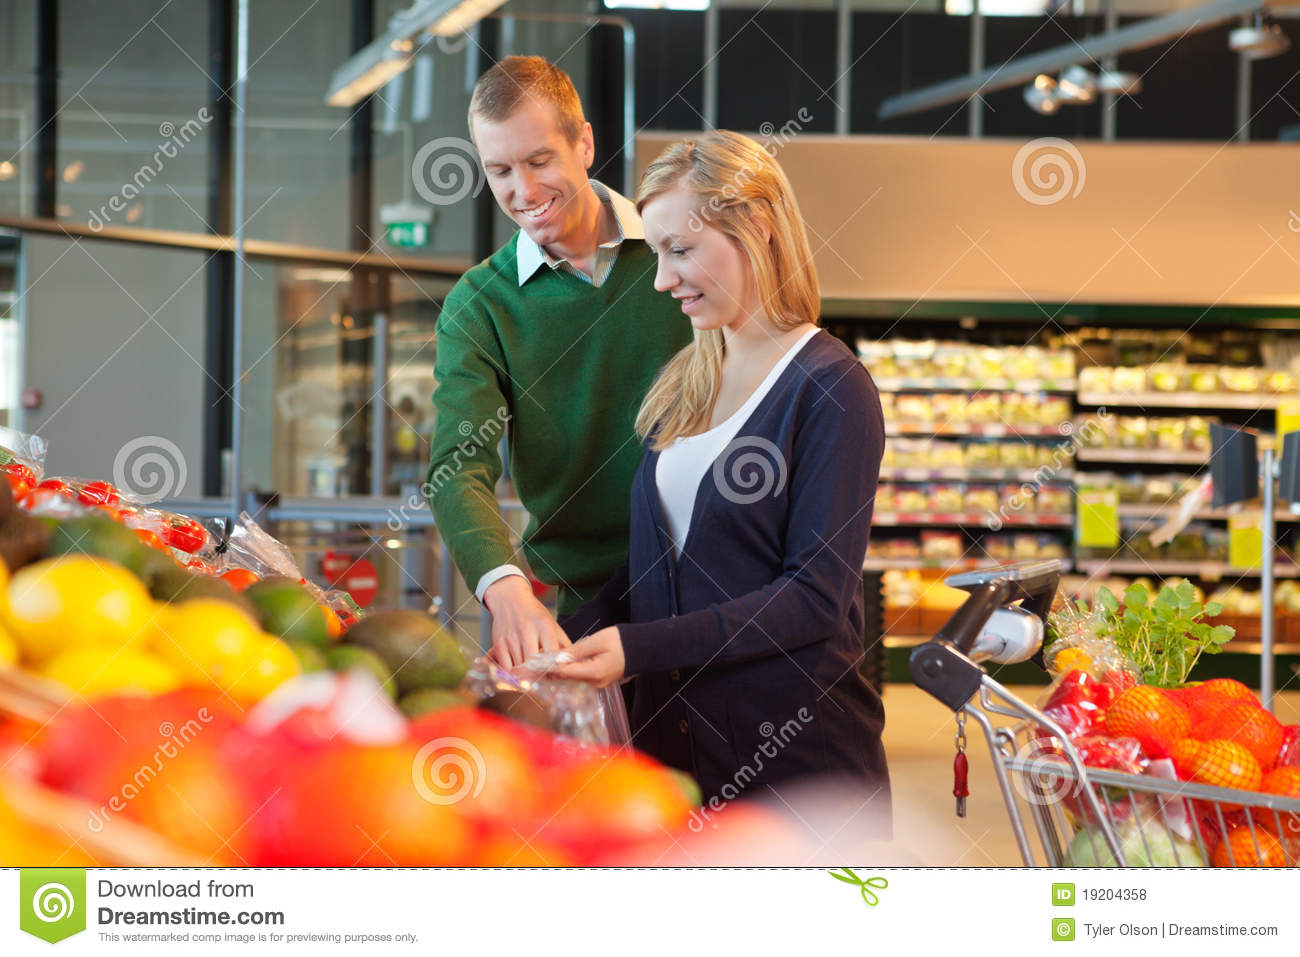 Smiling couple in shopping store